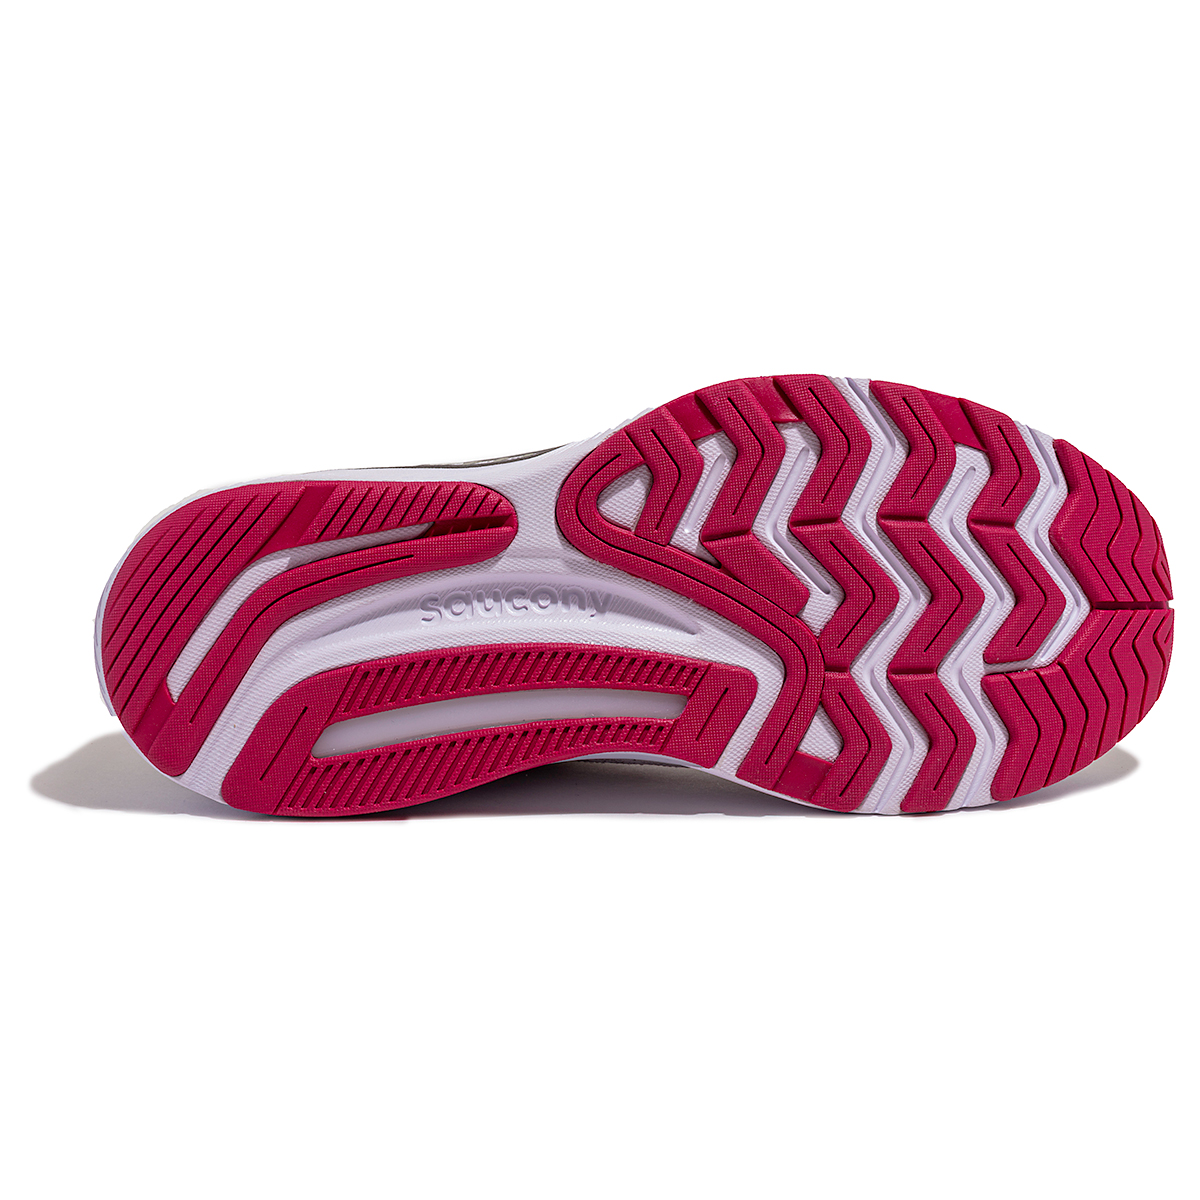 Women's Saucony Guide 14 Running Shoe - Color: Alloy/Cherry - Size: 5 - Width: Regular, Alloy/Cherry, large, image 3